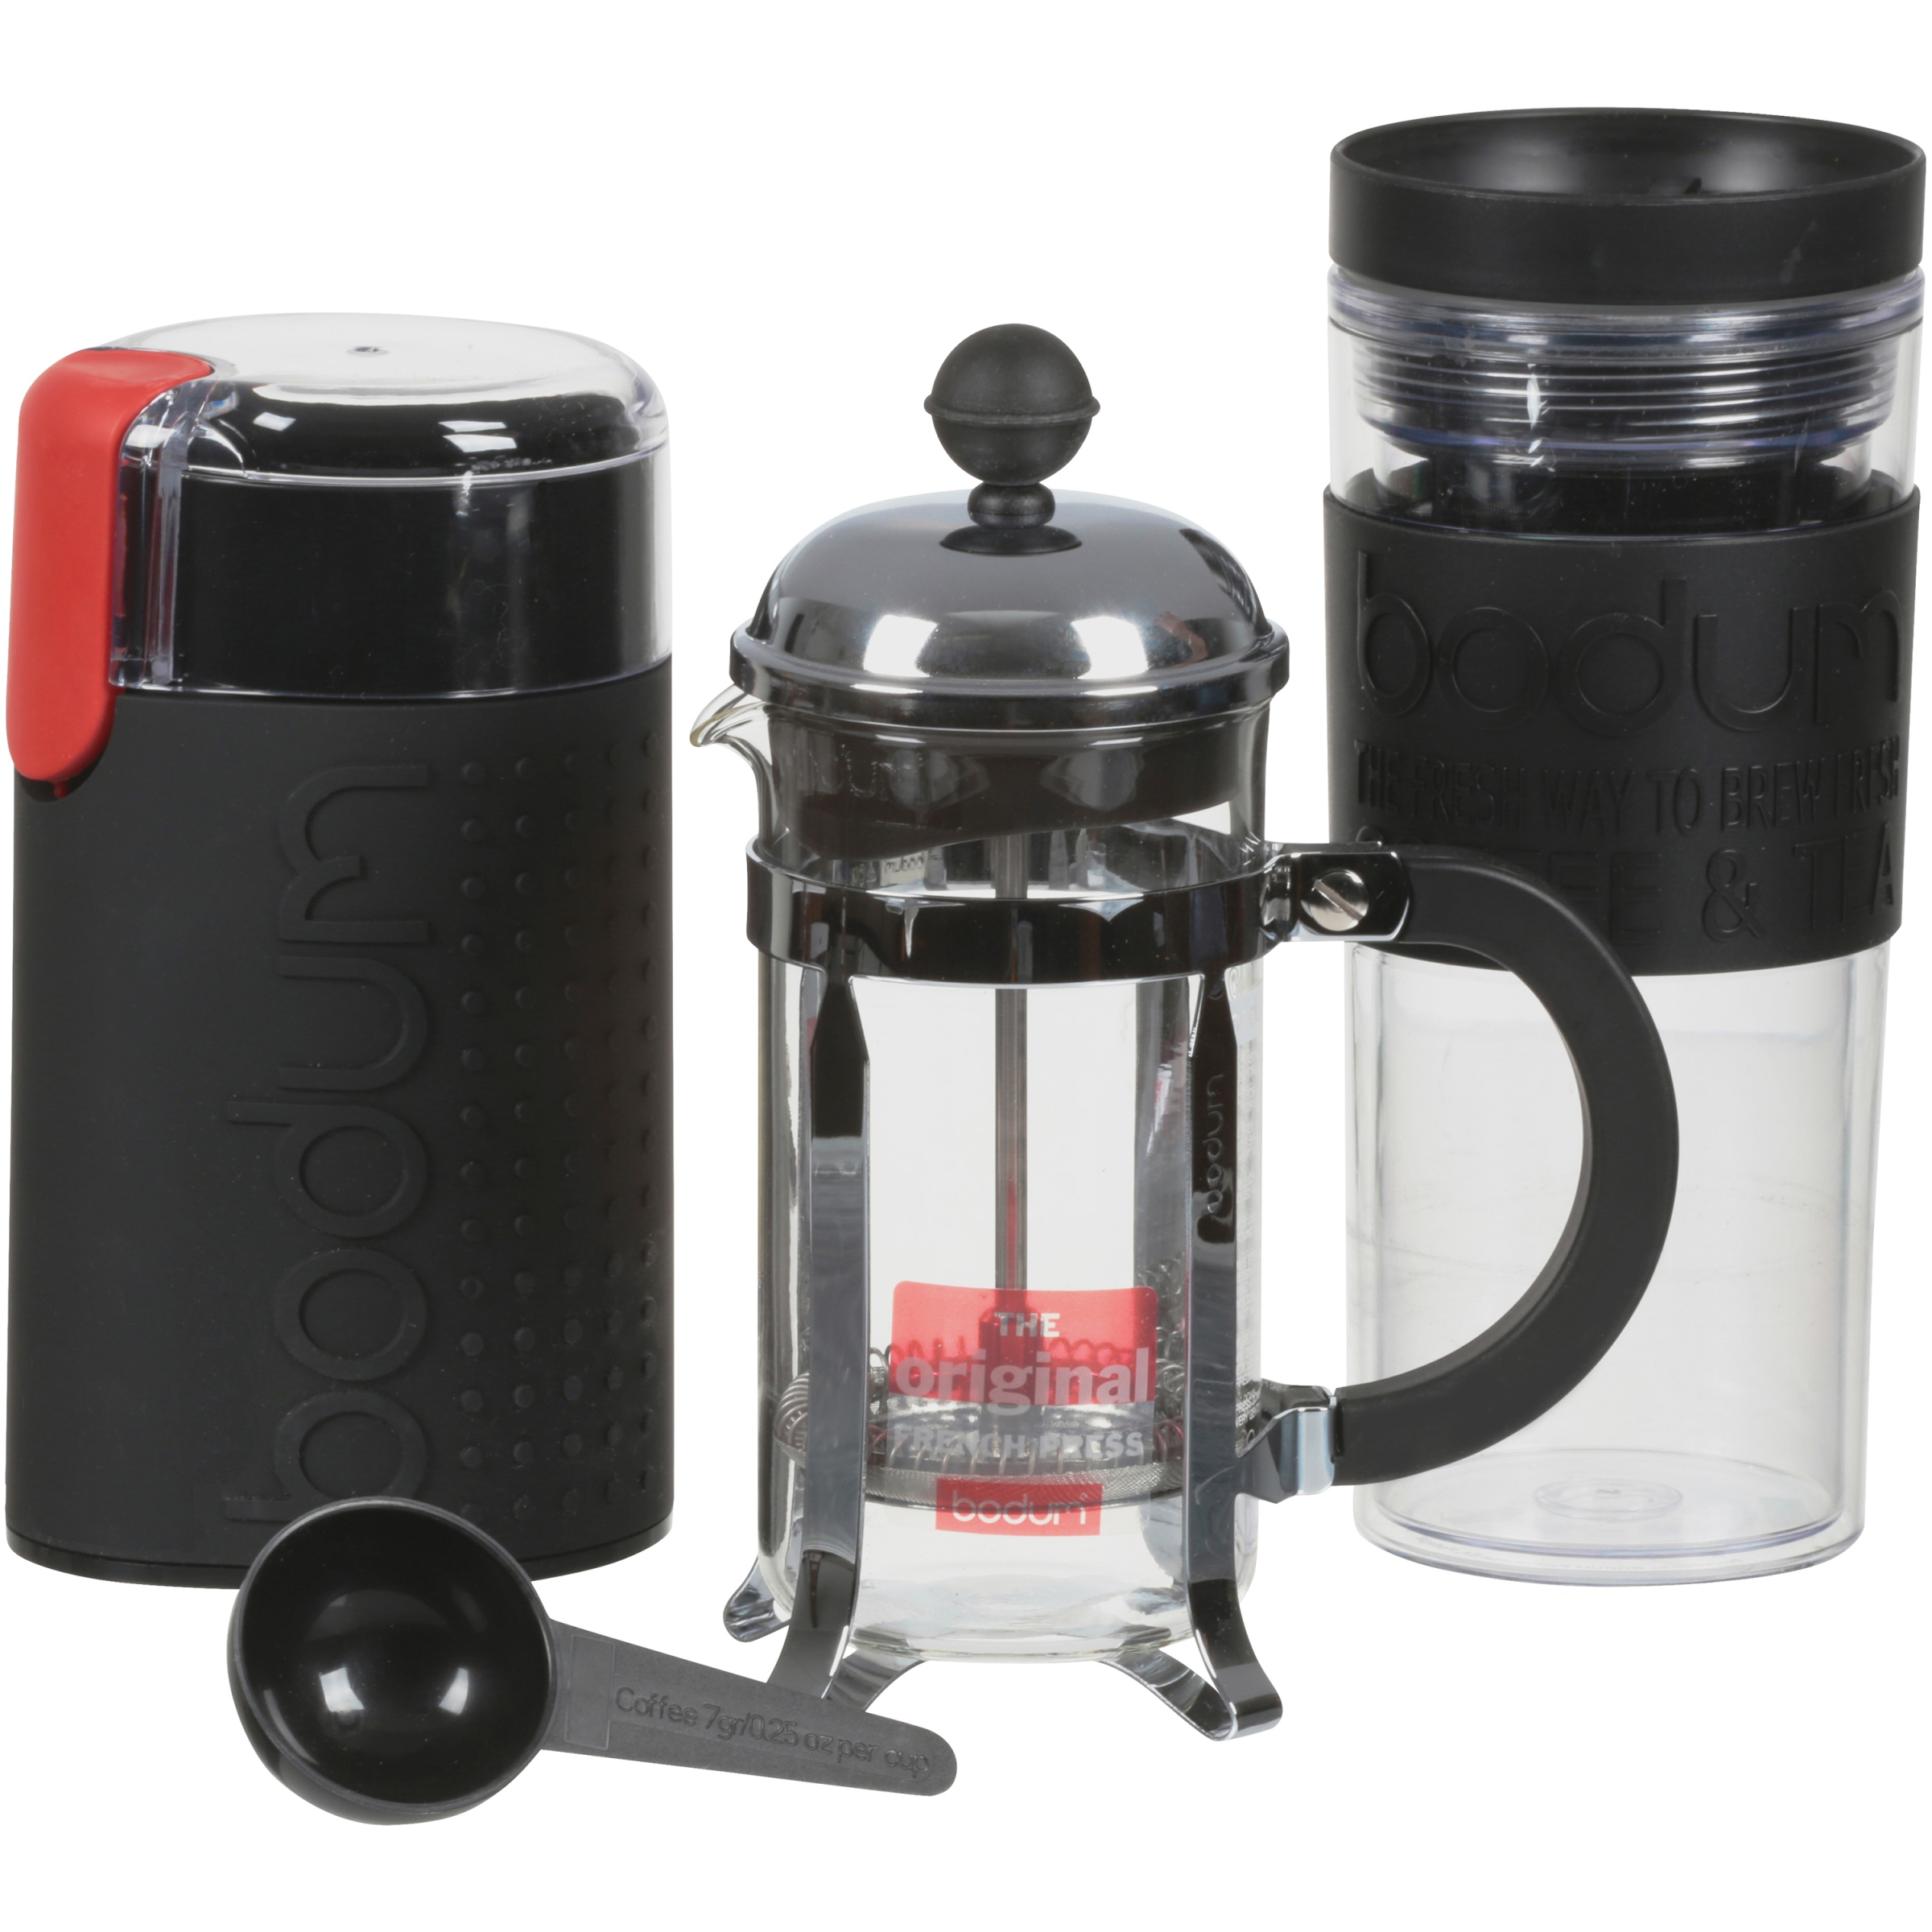 Bodum CHAMBORD Set, French Press Coffee Maker,Electric Coffee Grinder, Mug